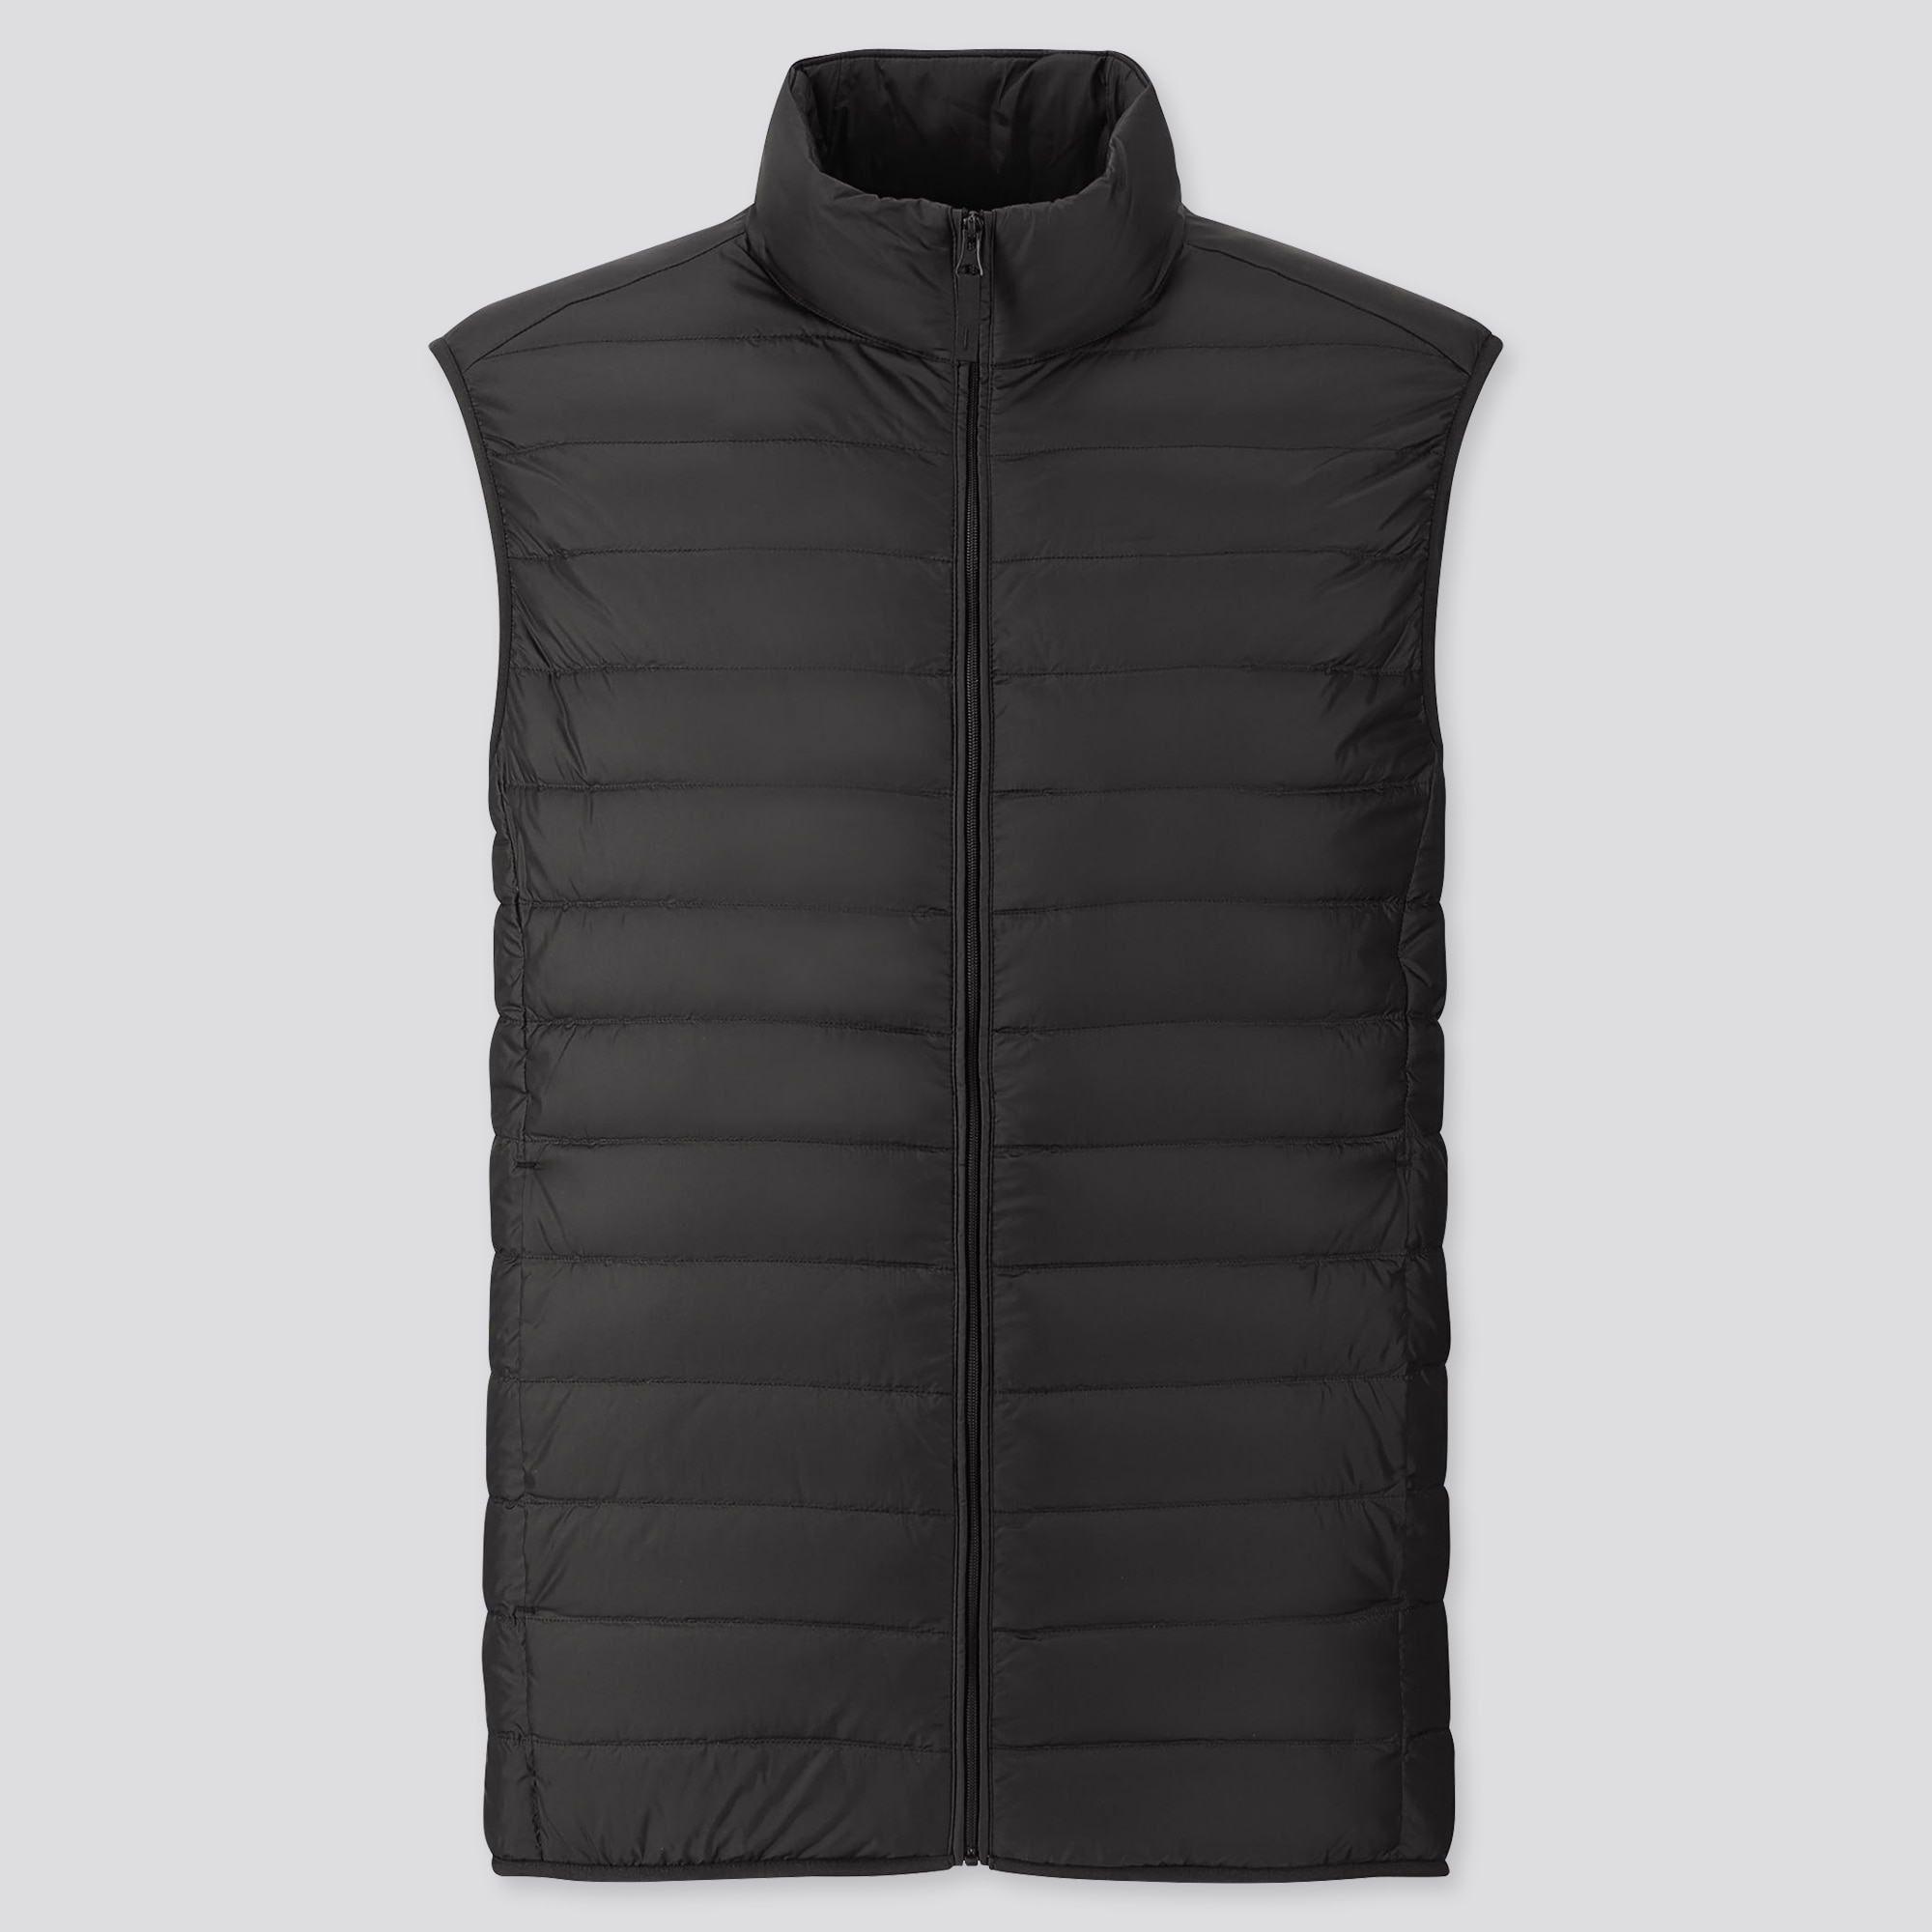 MEN ULTRA LIGHT DOWN VEST : Color - 08 Dark Gray, Size - S (419993)